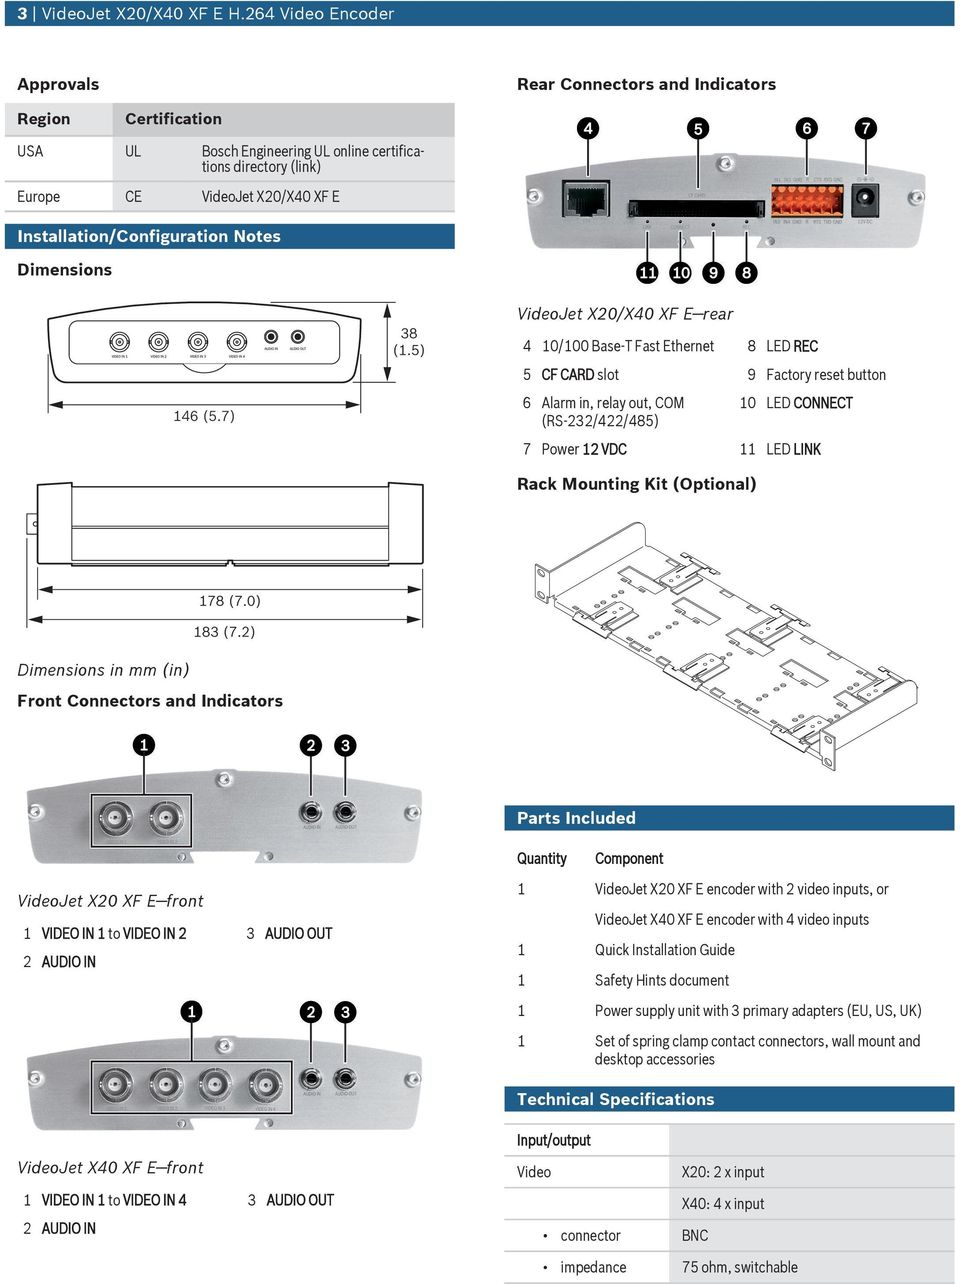 Notes Dimensions VideoJet X20/X40 XF E rear 4 10/100 Base-T Fast Ethernet 8 LED REC 5 CF CARD slot 9 Factory reset btton 6 Alarm in, relay ot, COM (RS-232/422/485) 10 LED CONNECT 7 Power 12 VDC 11